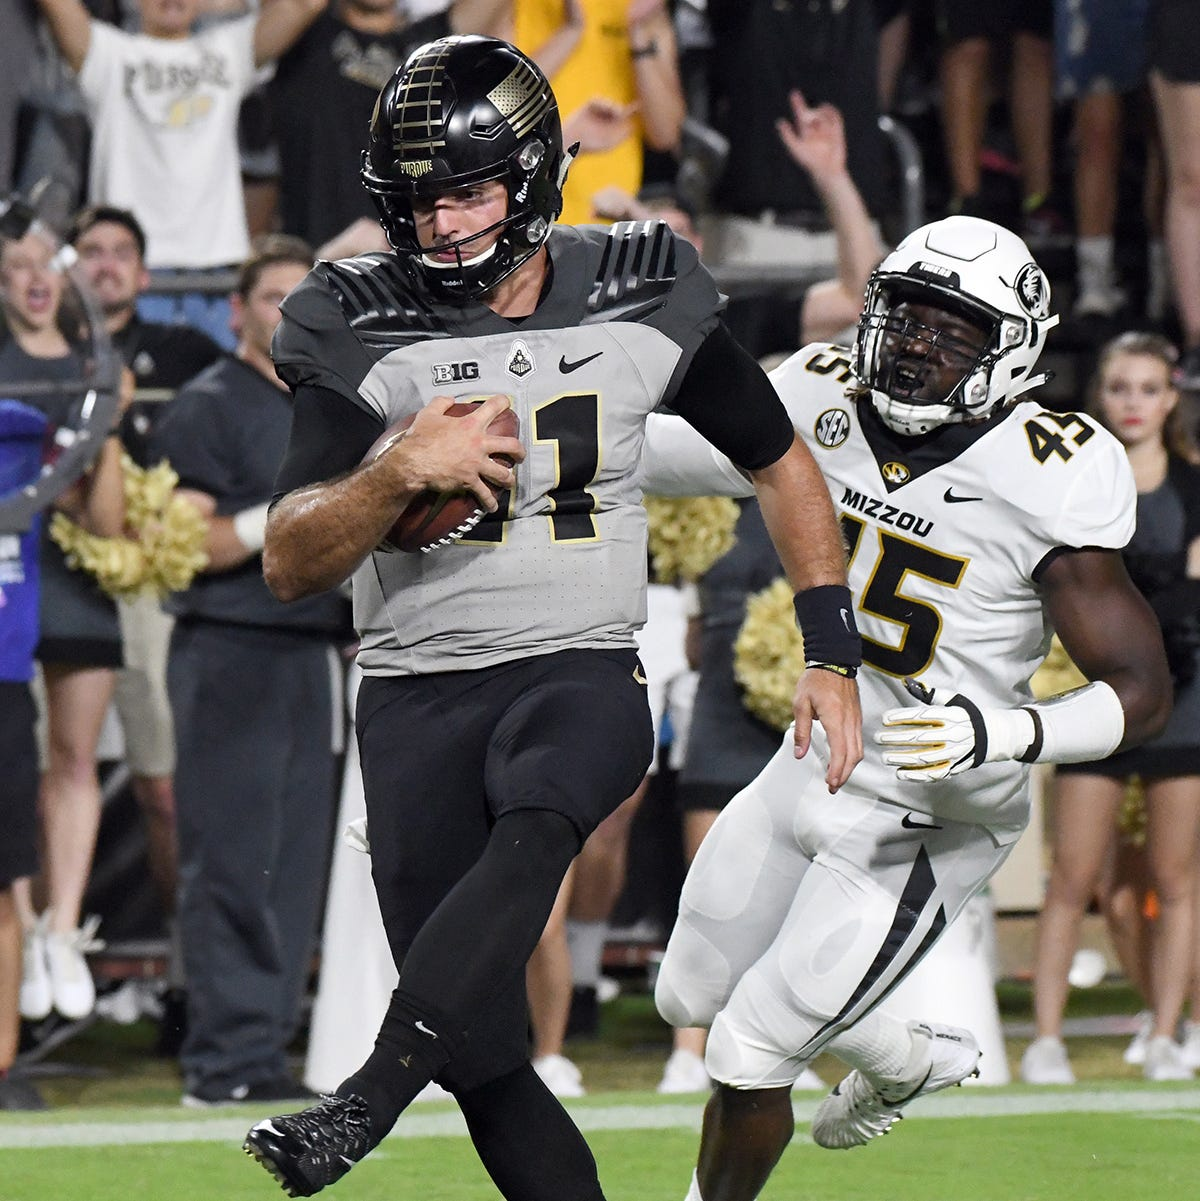 Sideline conversation ignites Purdue quarterback David Blough to record-setting game